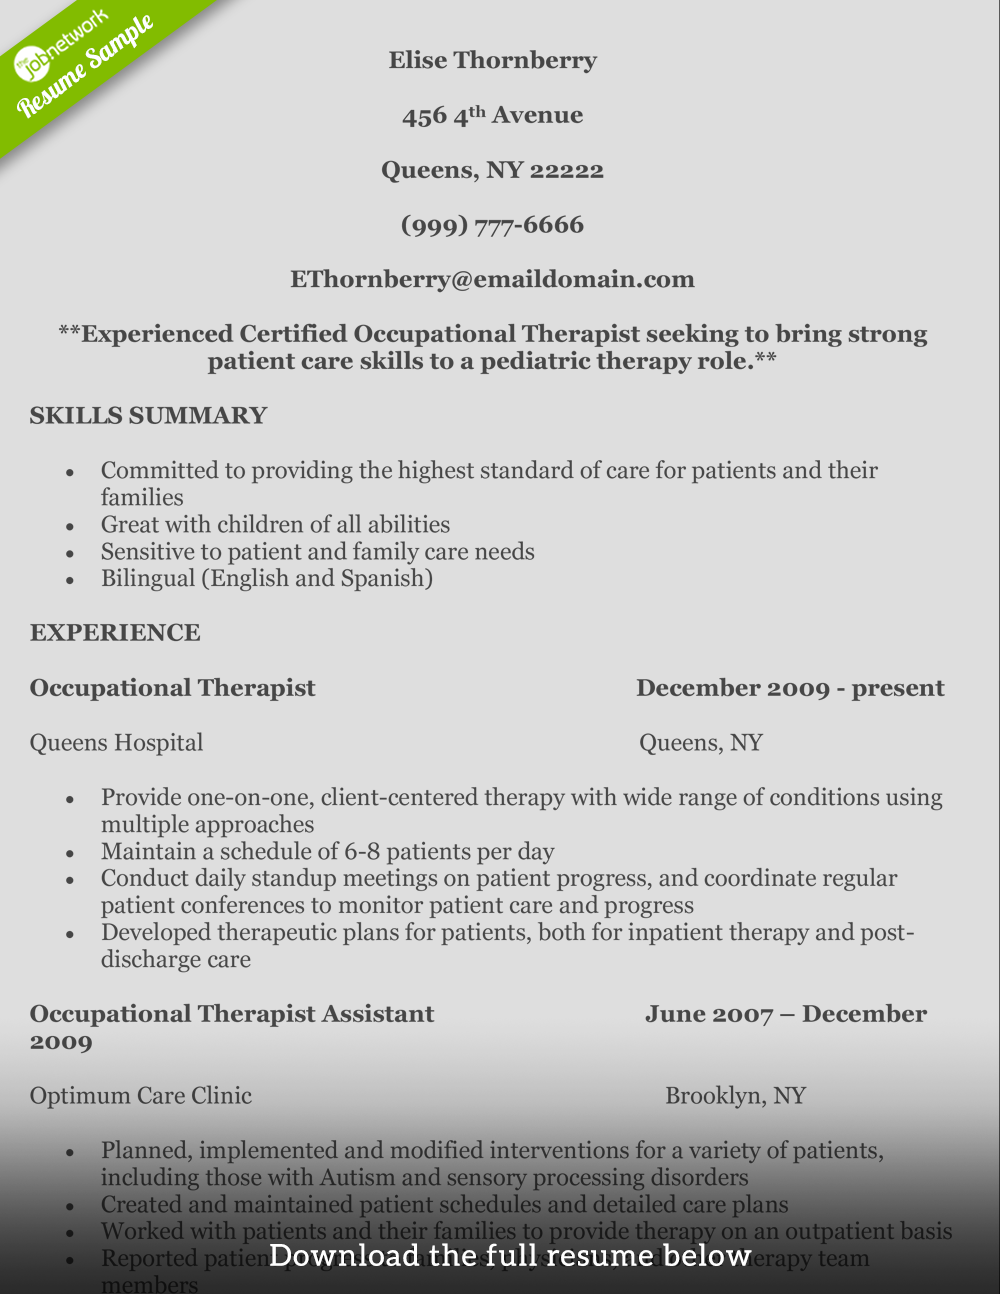 Occupation Therapist Resume Elise